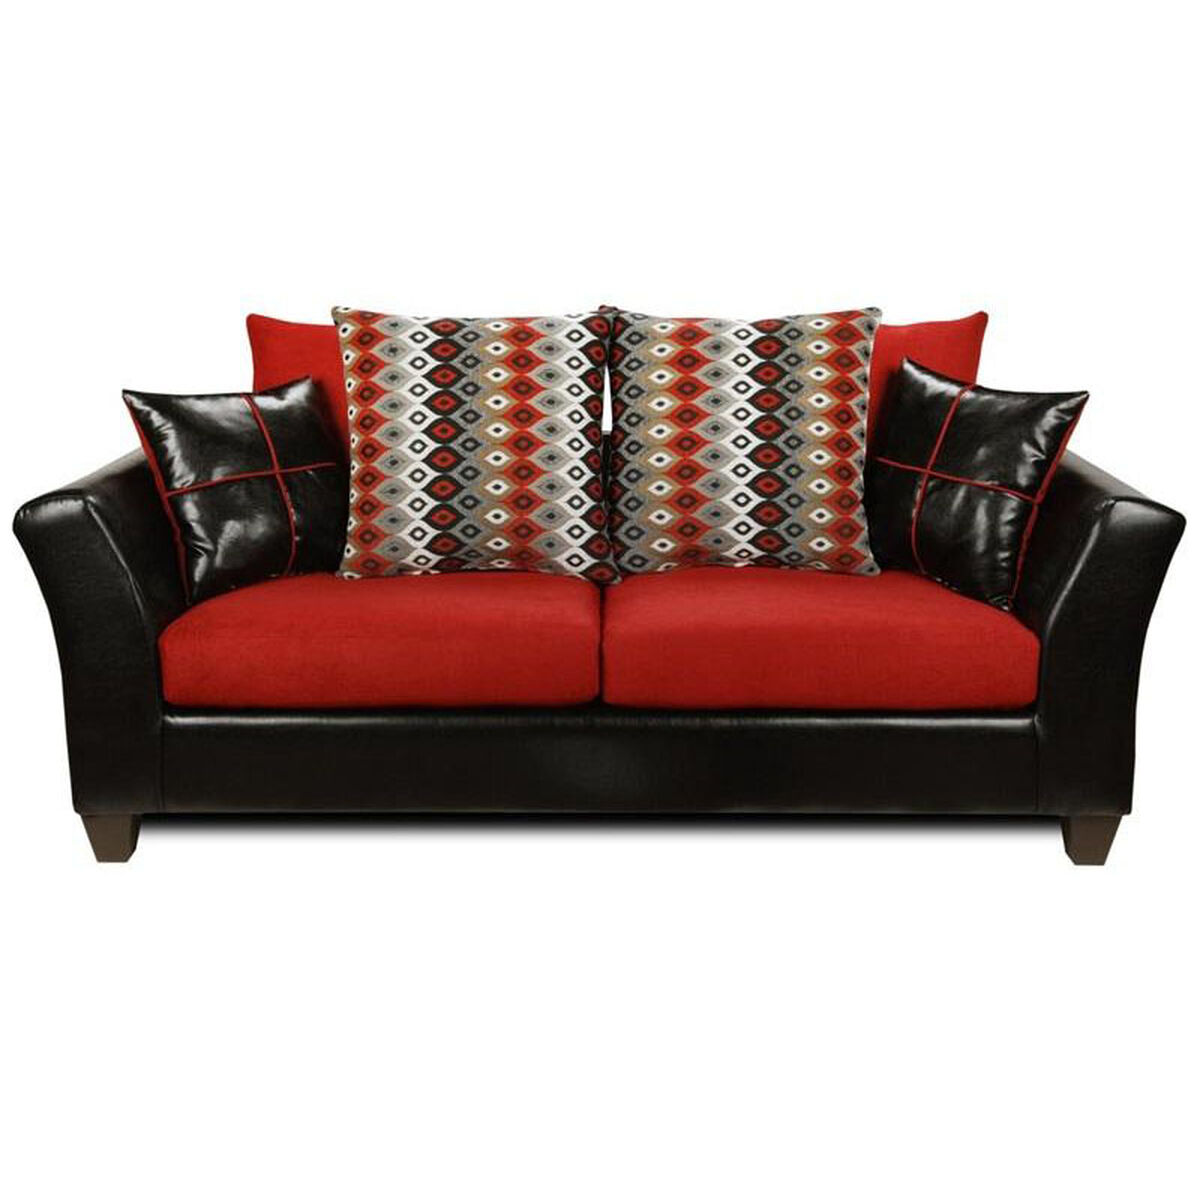 Chelsea home furniture 294170 s cr chel for Home furnishing sites